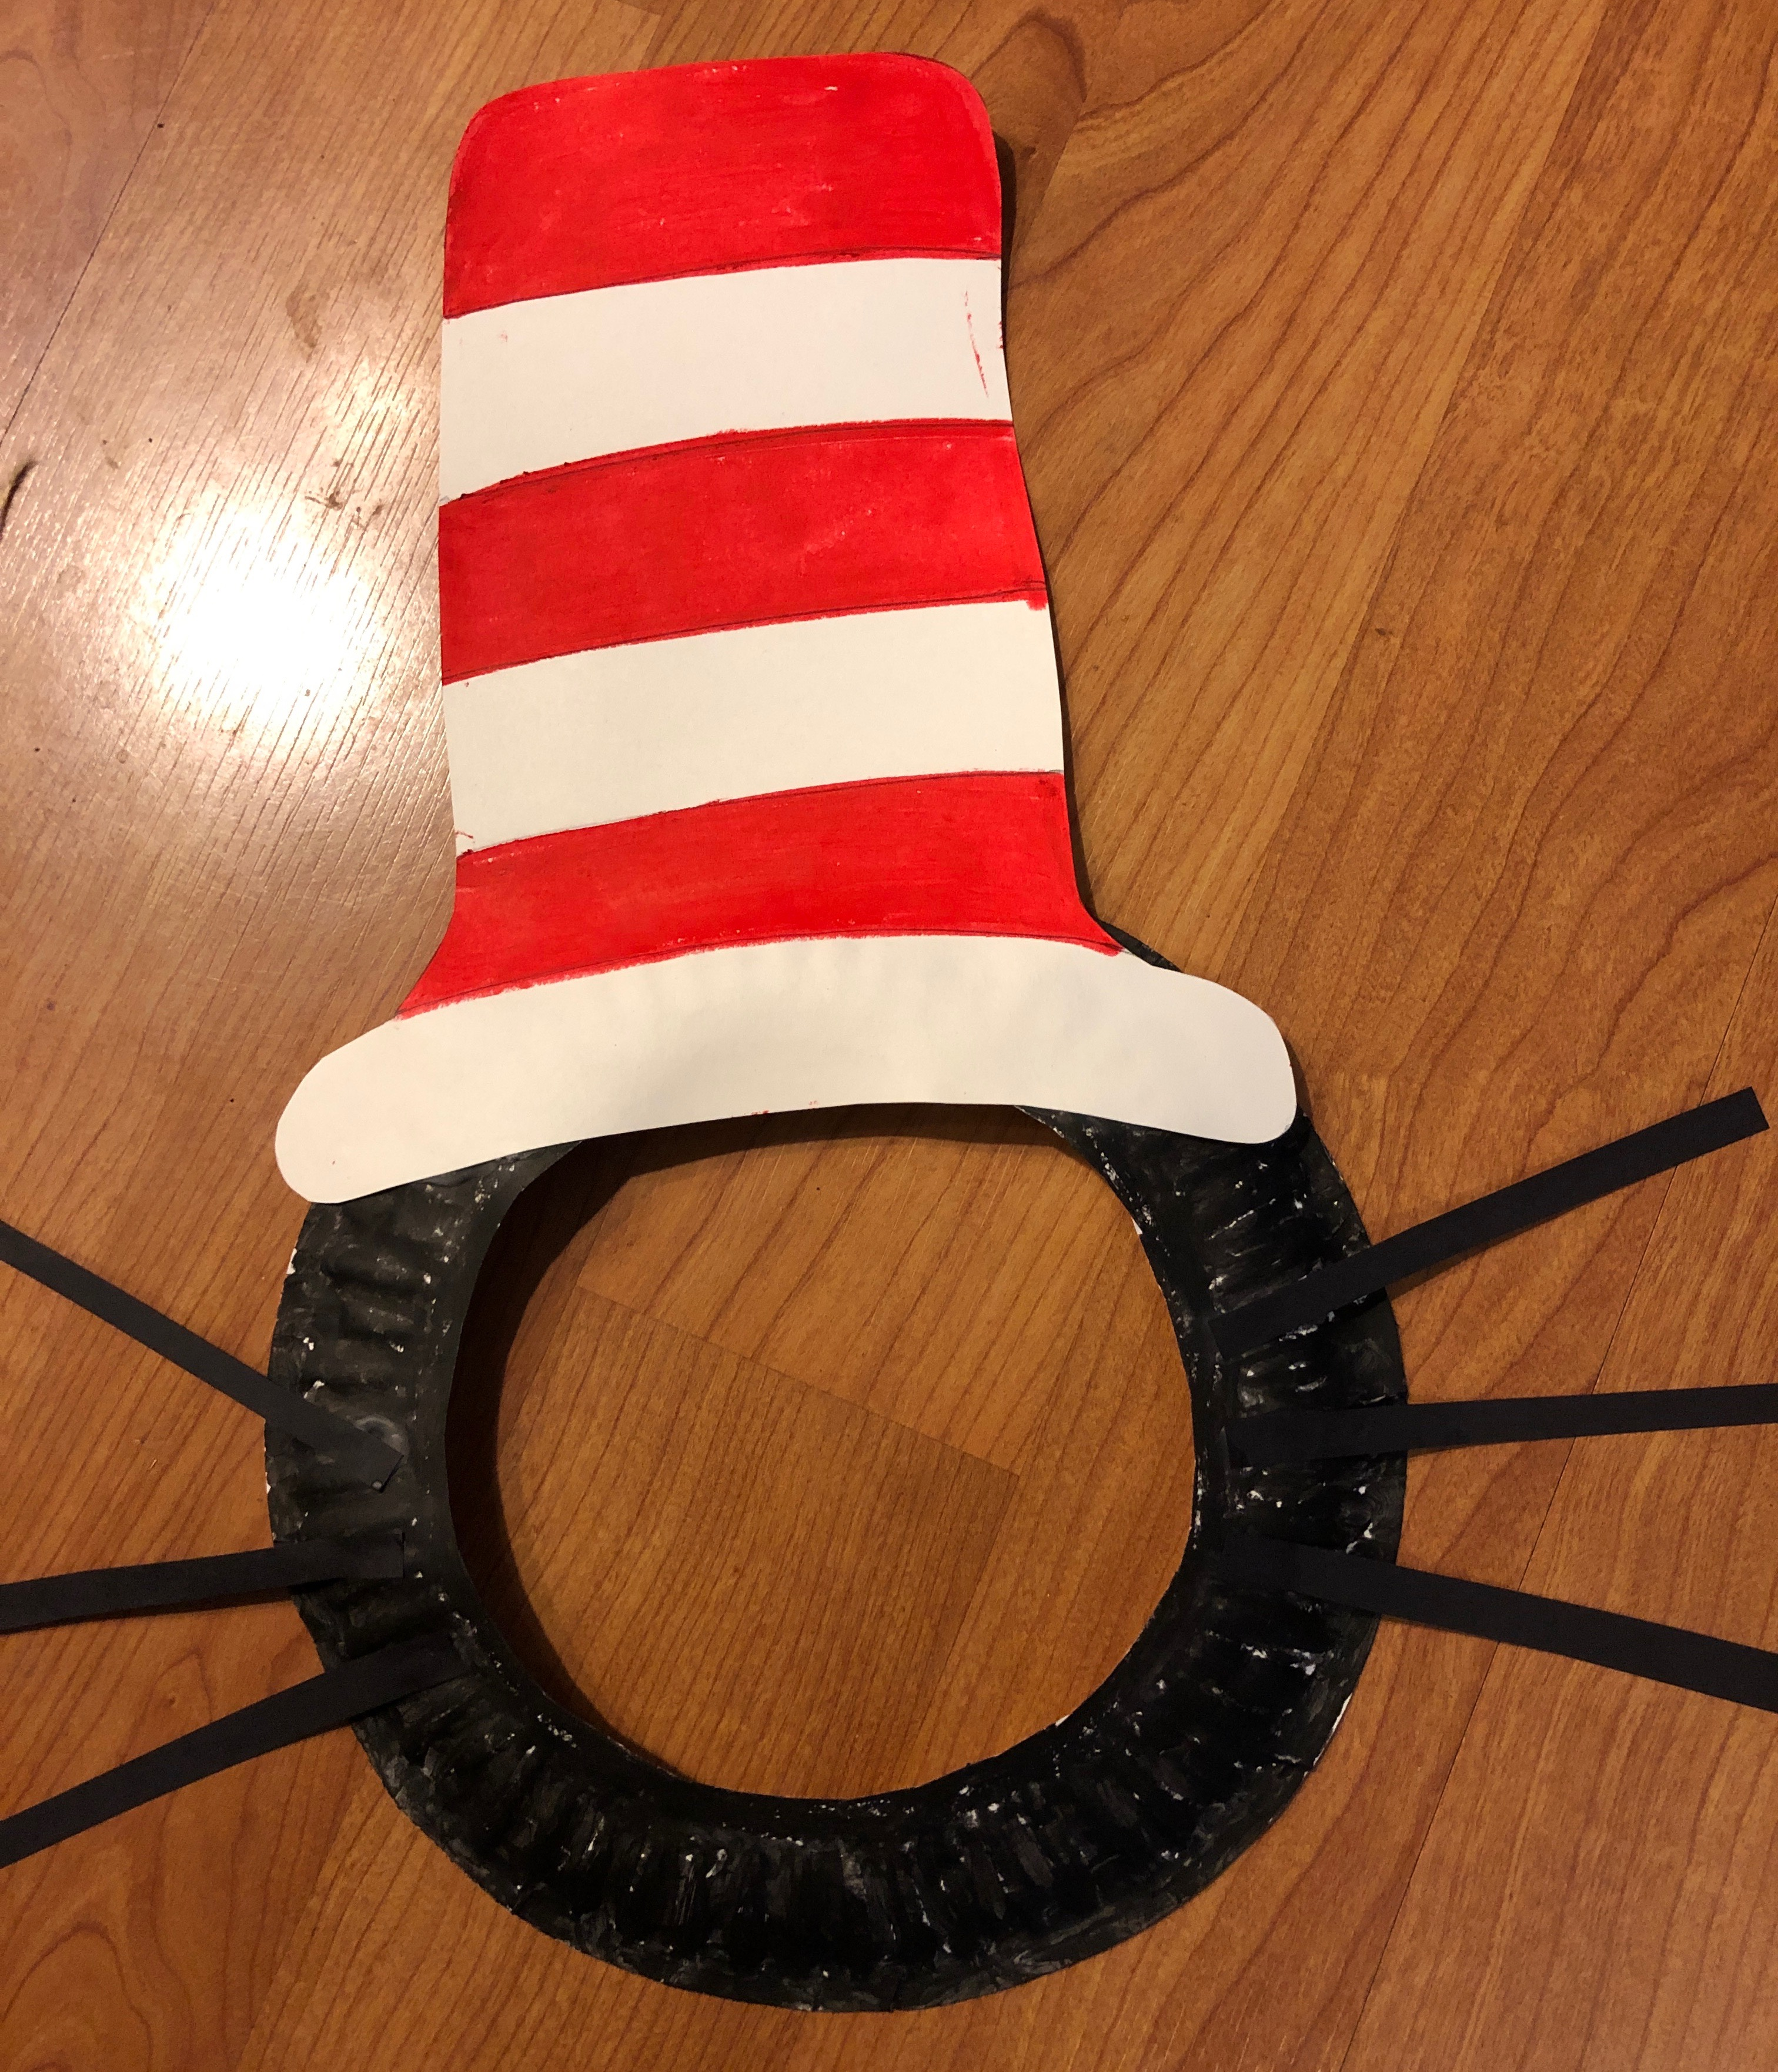 c48312abeab Celebrate Dr. Seuss s Birthday March 2 With a Cat in the Hat Craft ...